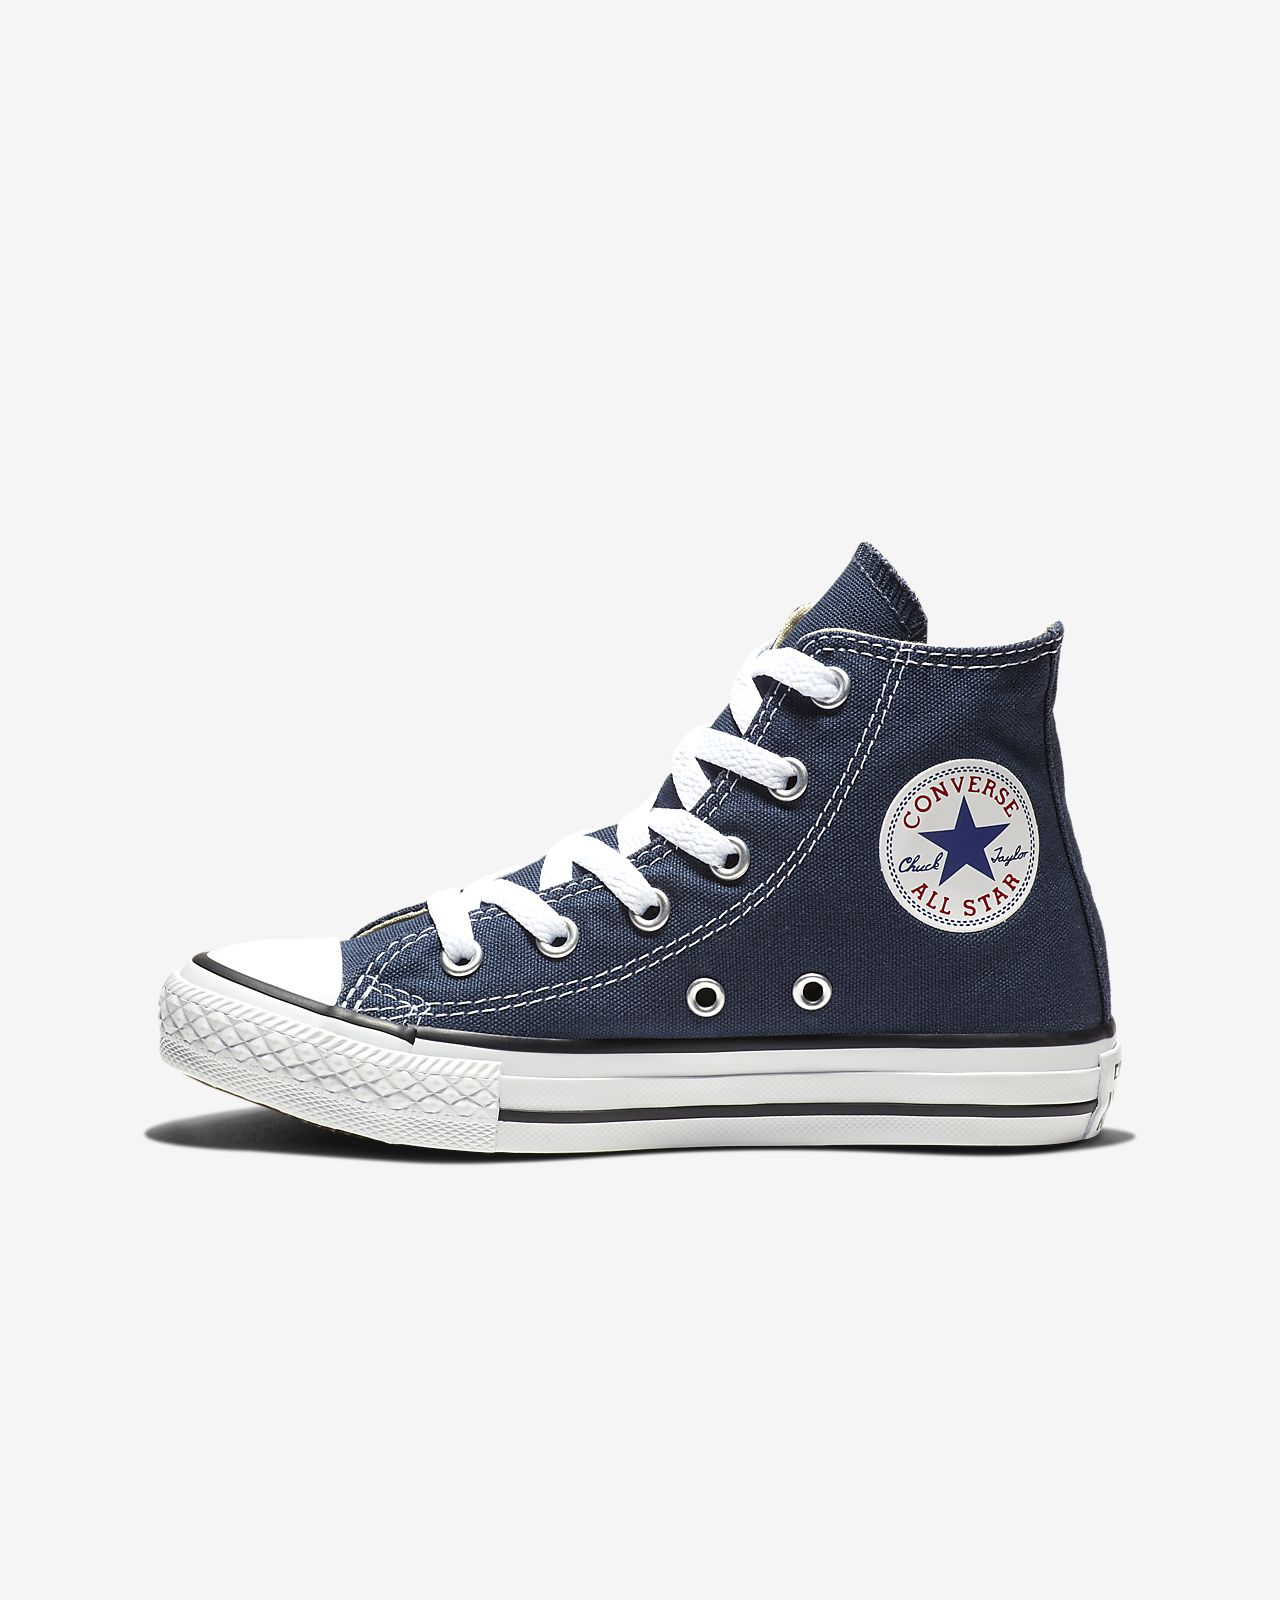 2035911de19a Converse Chuck Taylor All Star High Top (10.5c-3y) Little Kids  Shoe ...